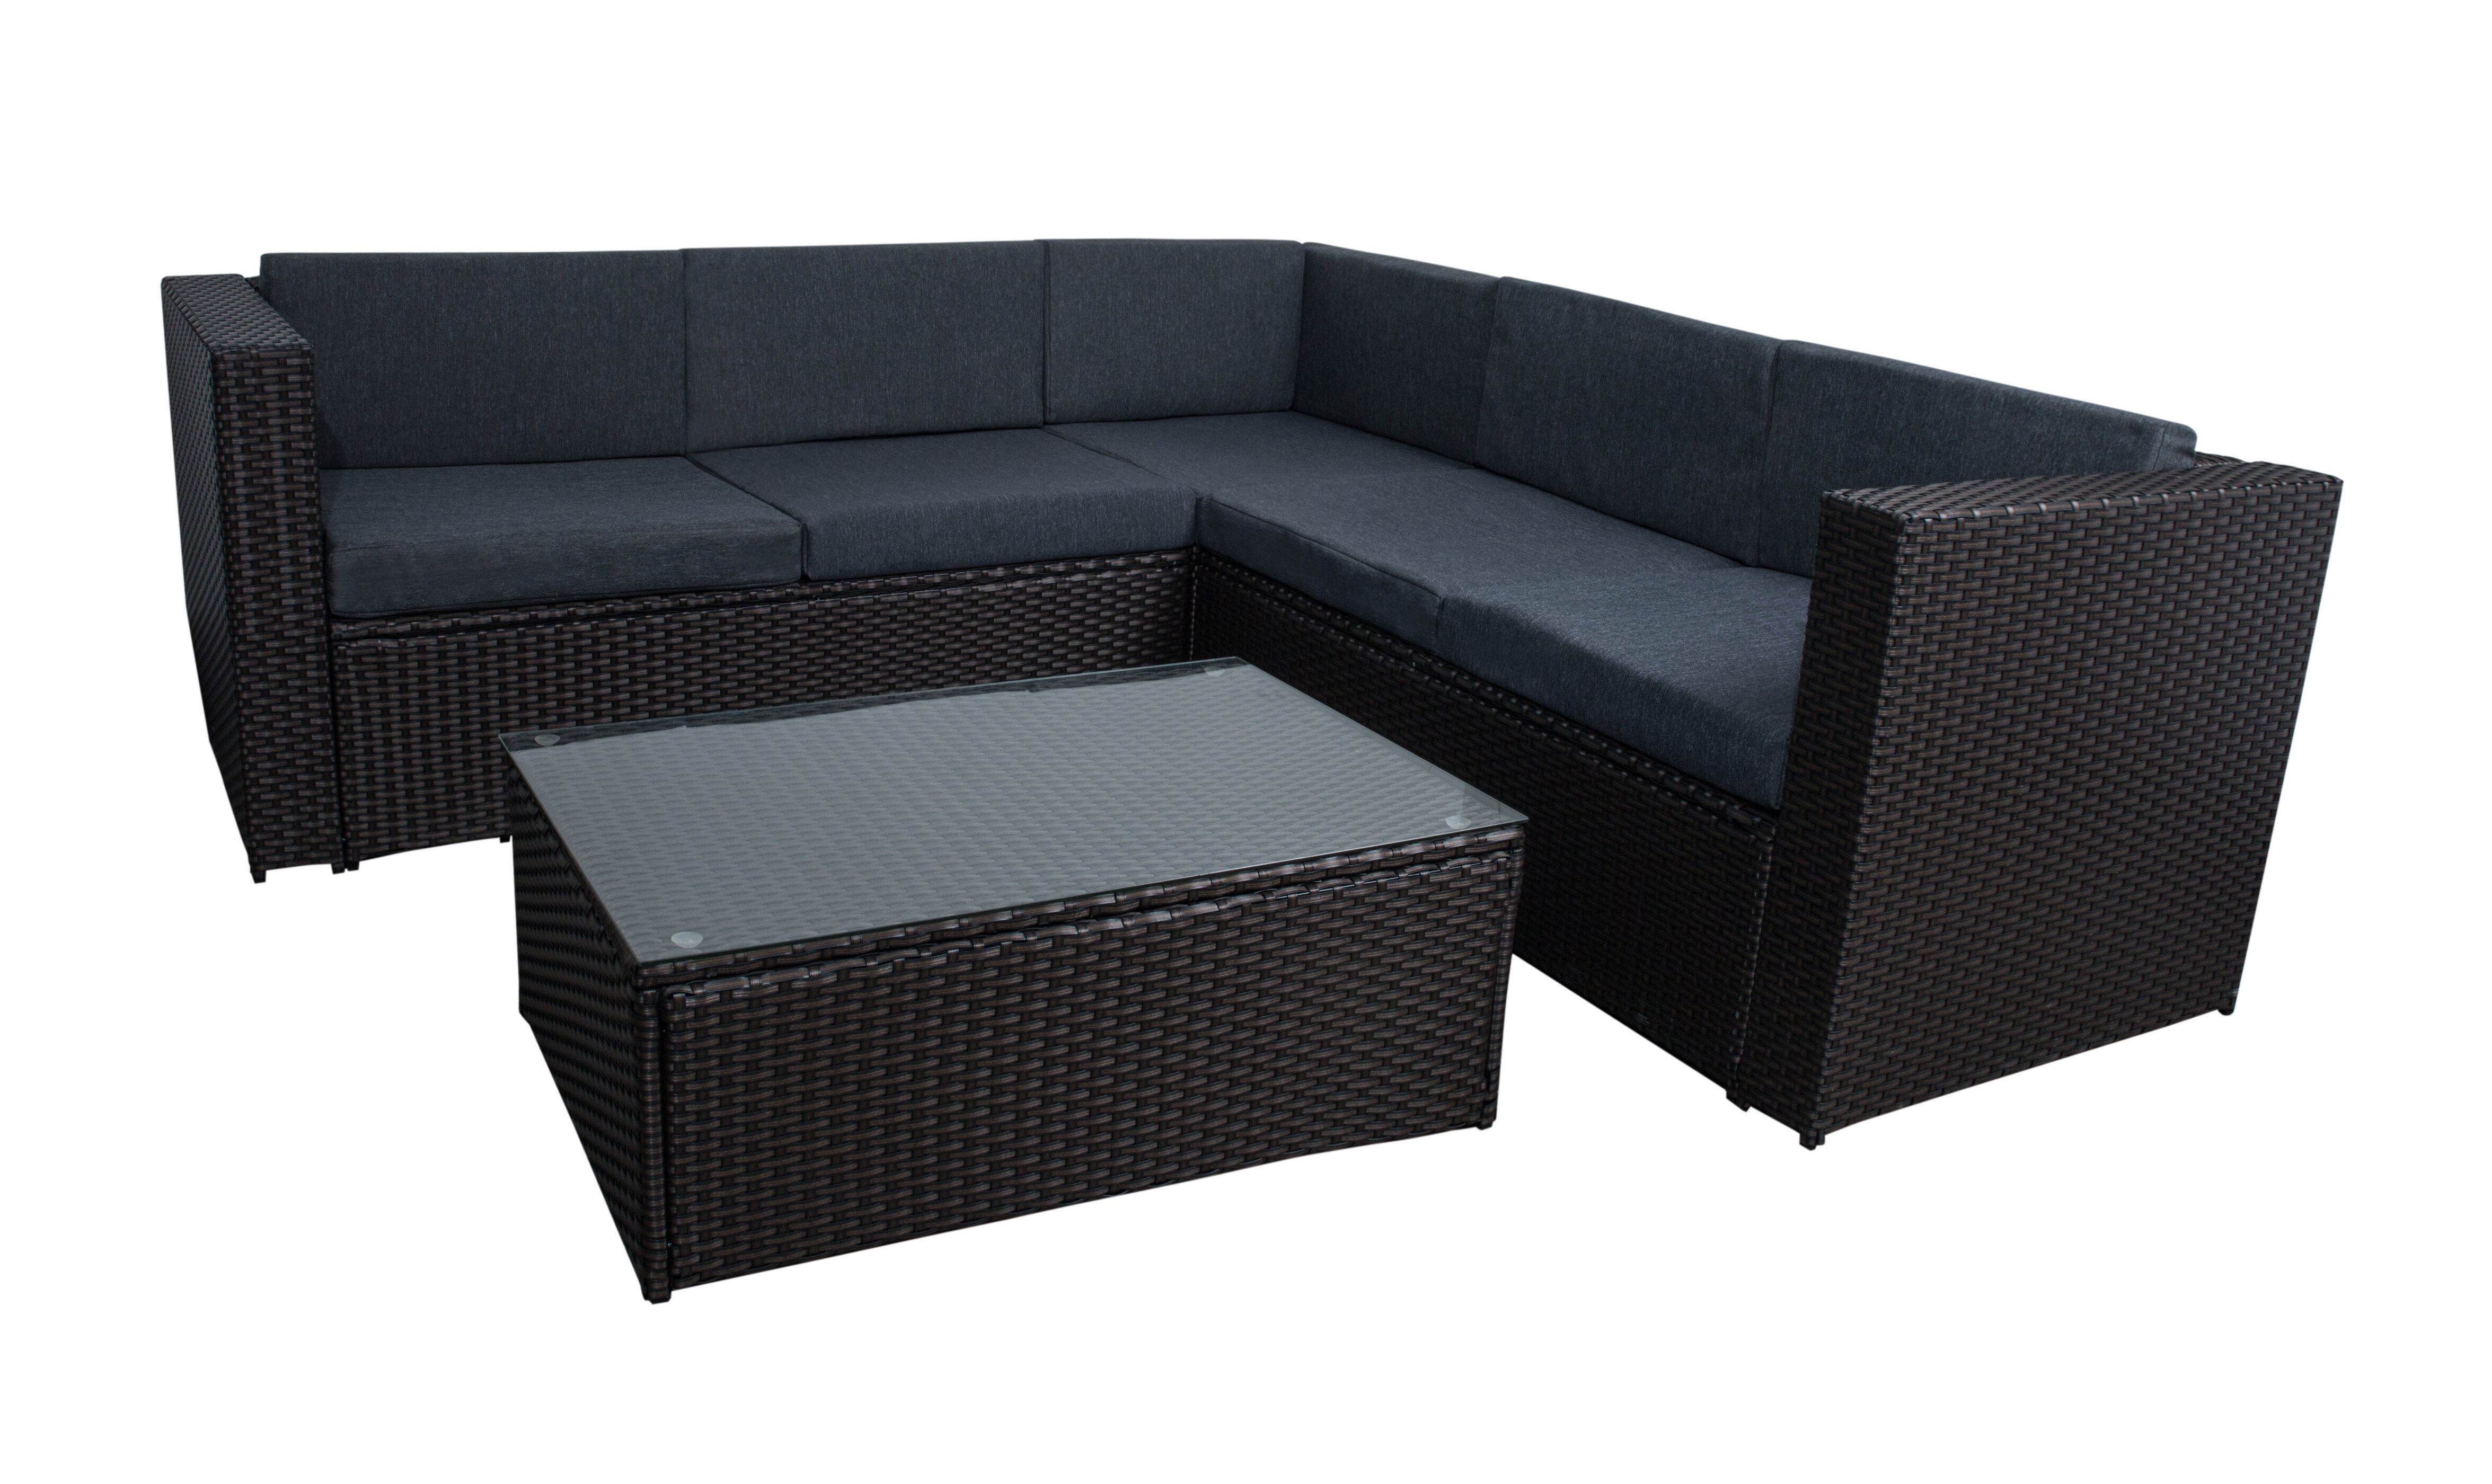 Wrought Studio Ortego 4 Piece Rattan Sectional Seating Group With Cushions Reviews Wayfair